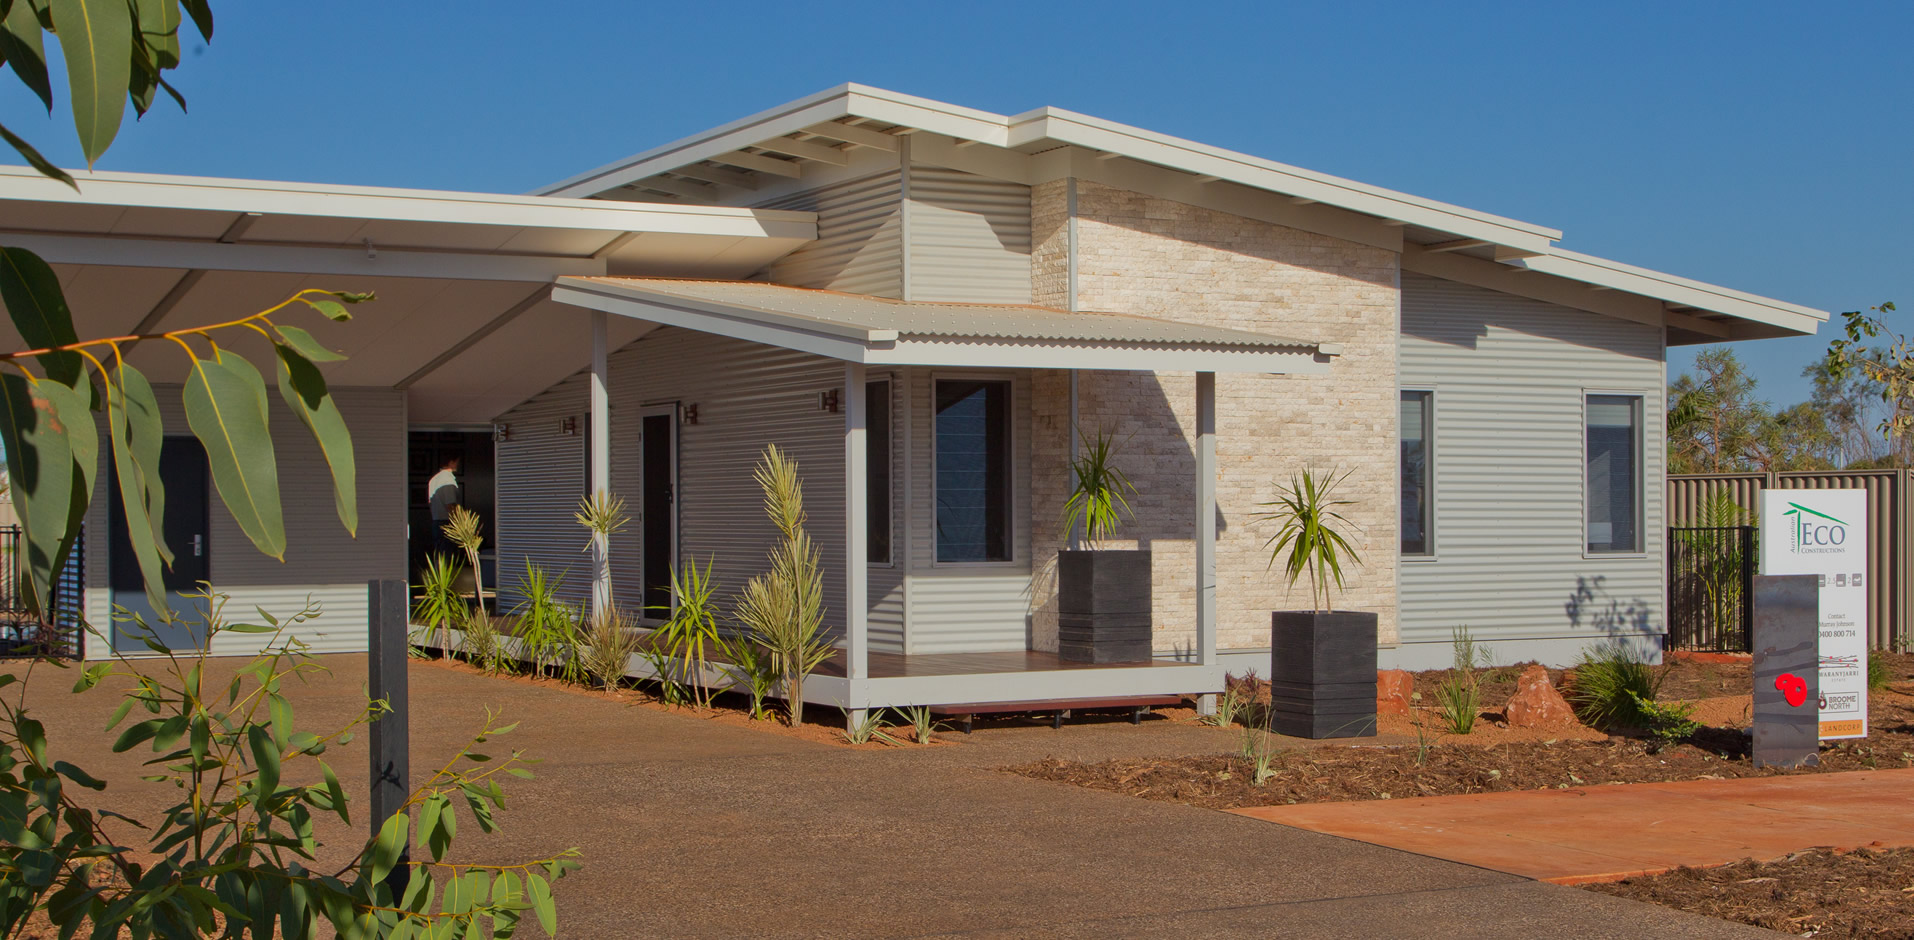 New home designs broome derby wa eco constructions Multi residential for sale